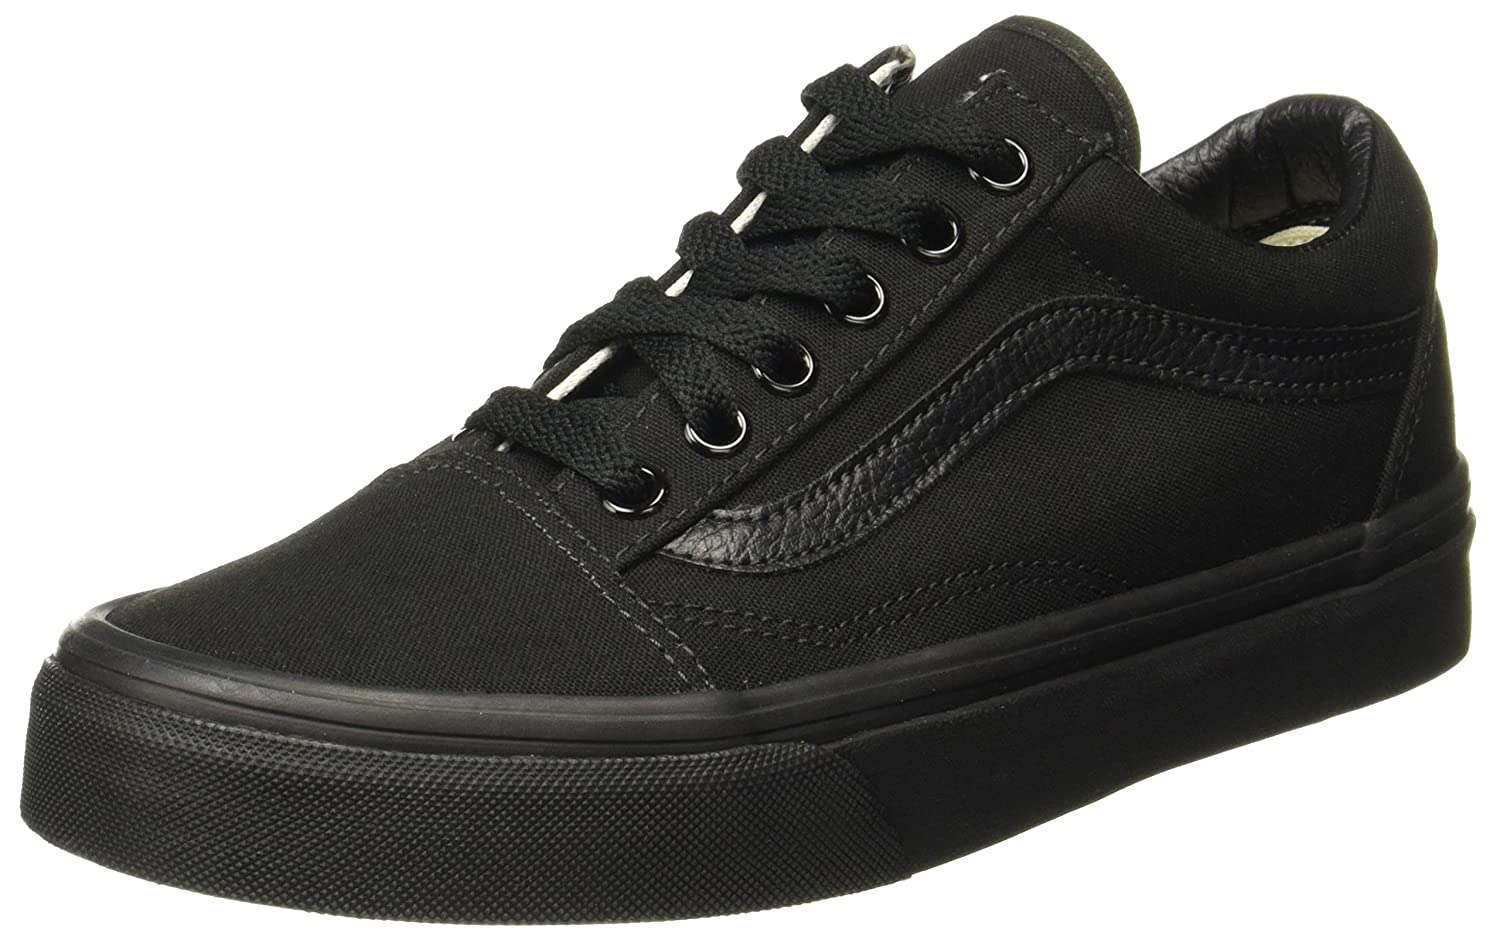 Vans Unisex Old Skool Classic Skate Shoes B001C19KT8 7.5 B(M) US Women / 6 D(M) US Men|(Black/Black (Canvas)